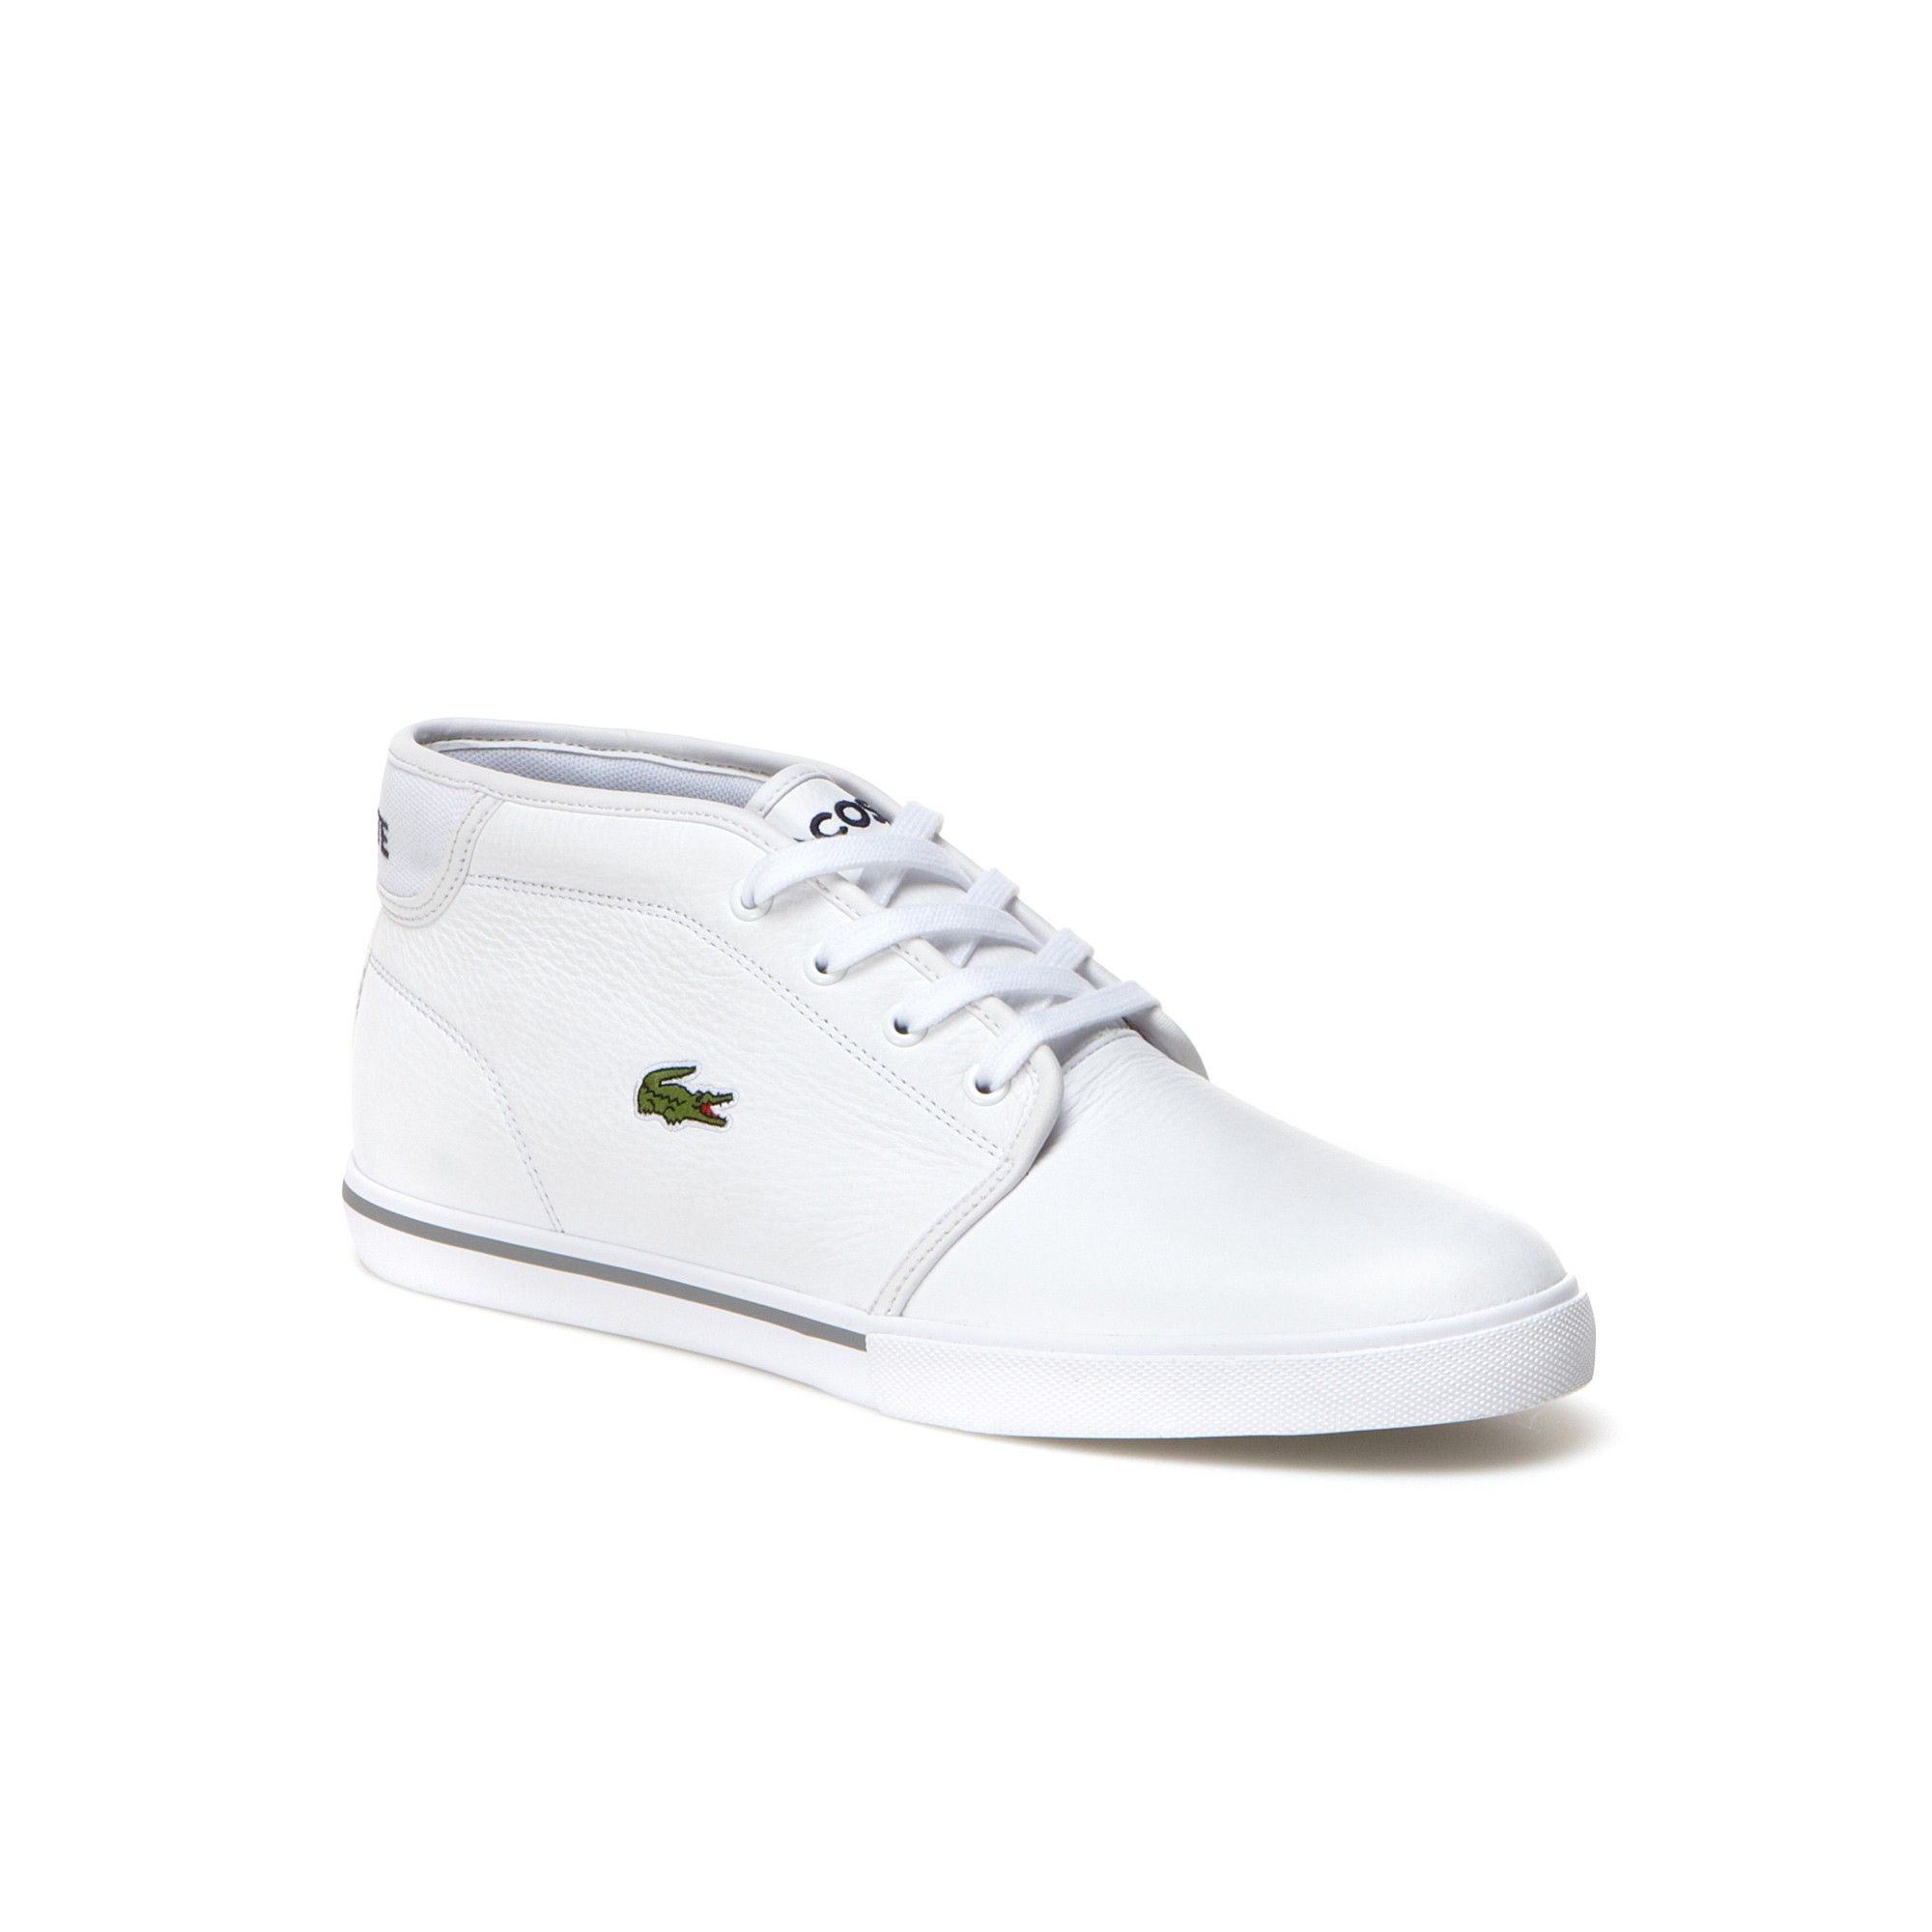 09380f70f9734 LACOSTE Men s Ampthill Piping Leather Sneakers - white.  lacoste  shoes